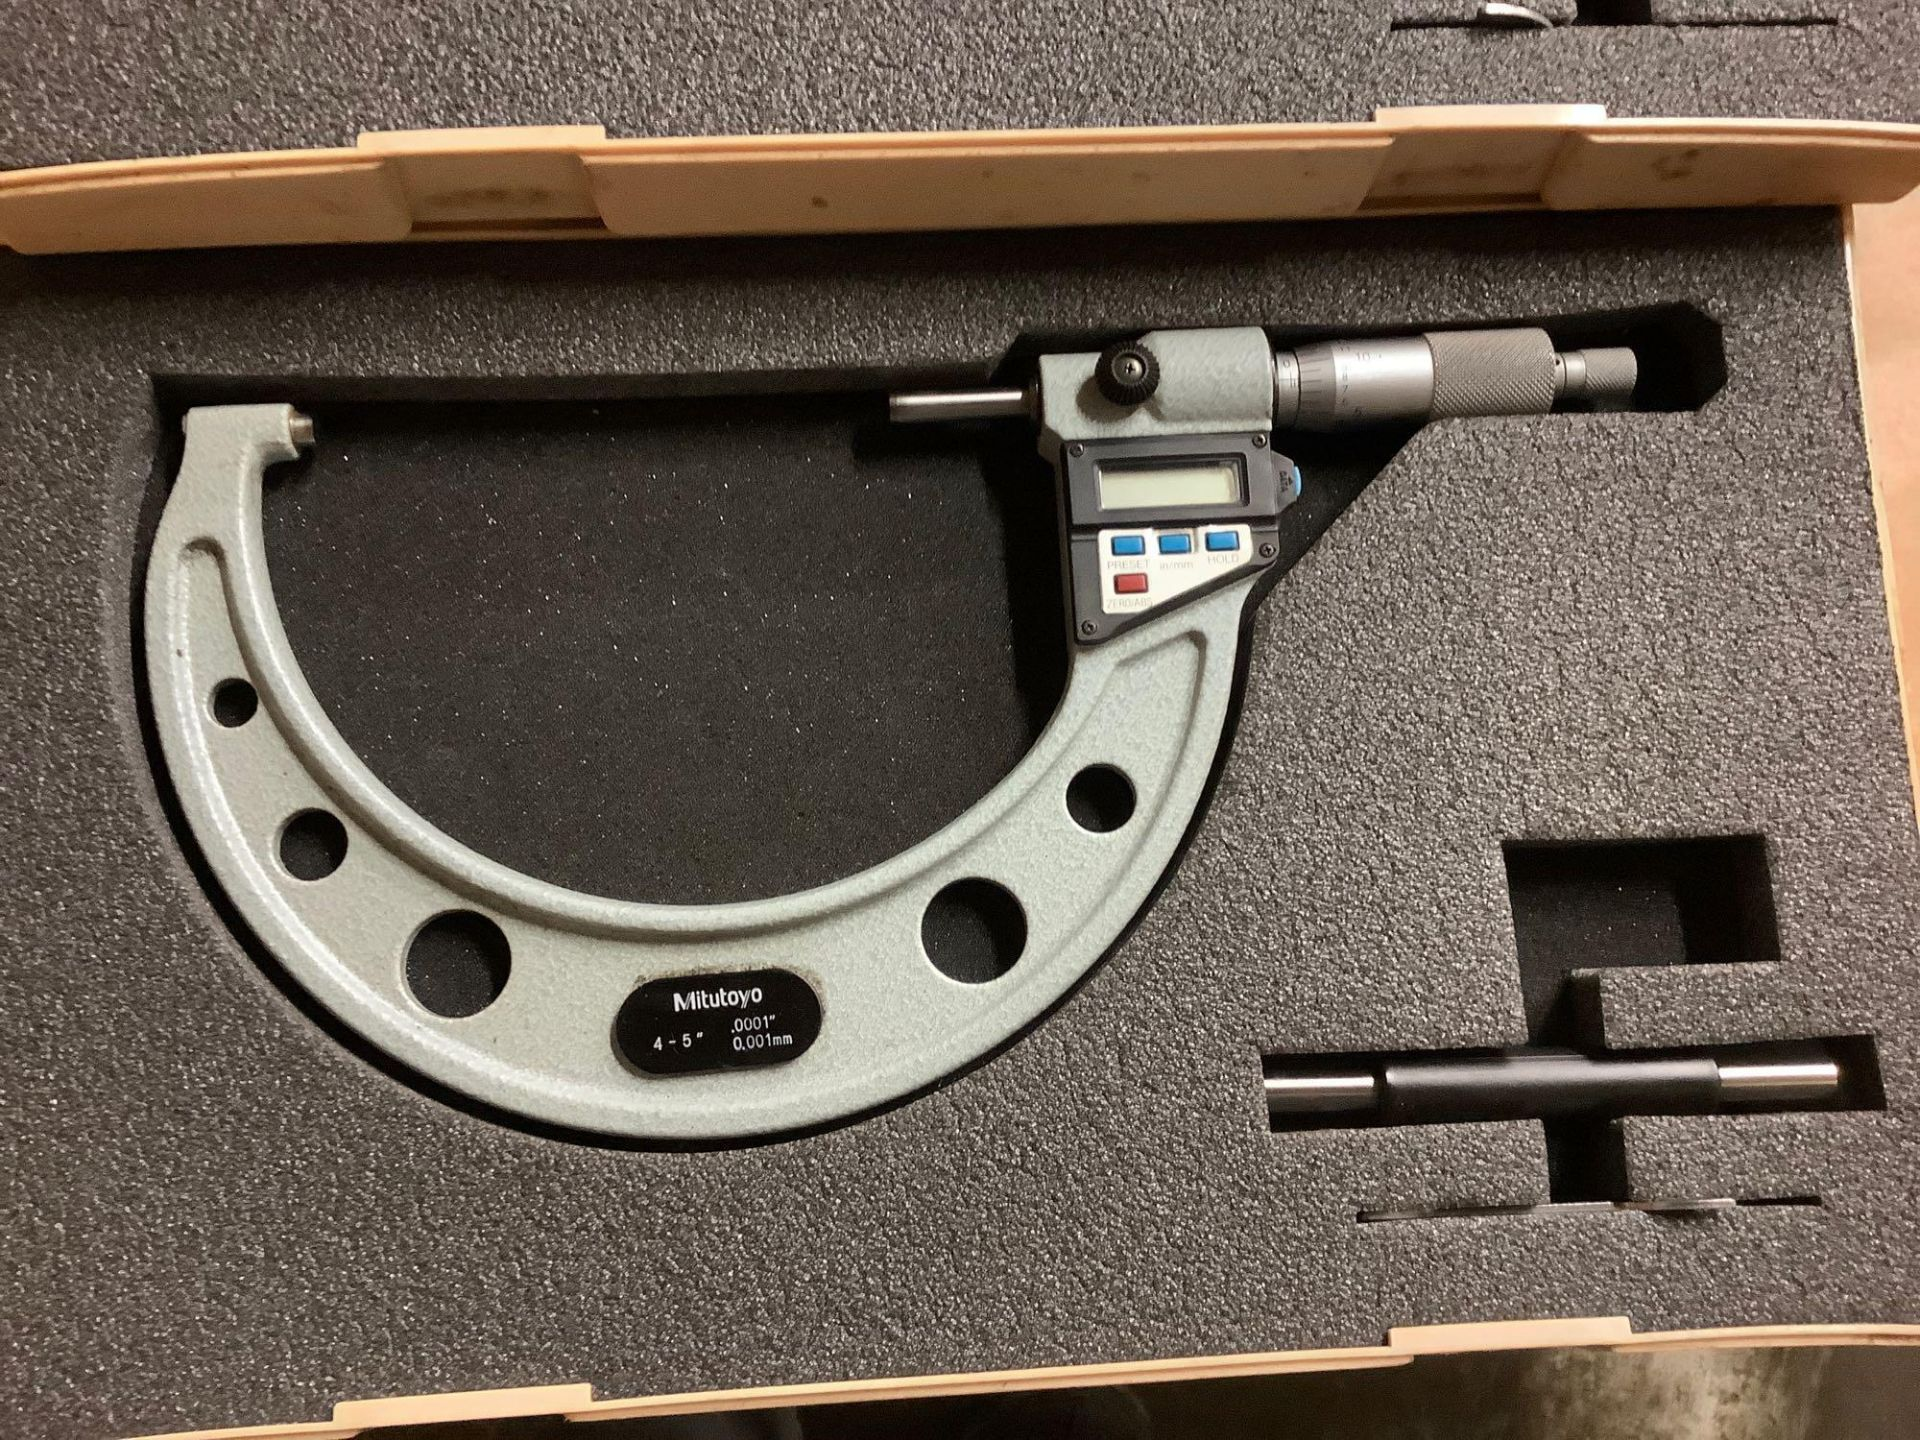 Lot of 3 Mitutoyo Micrometer Sets - Assorted sizes - Image 2 of 5